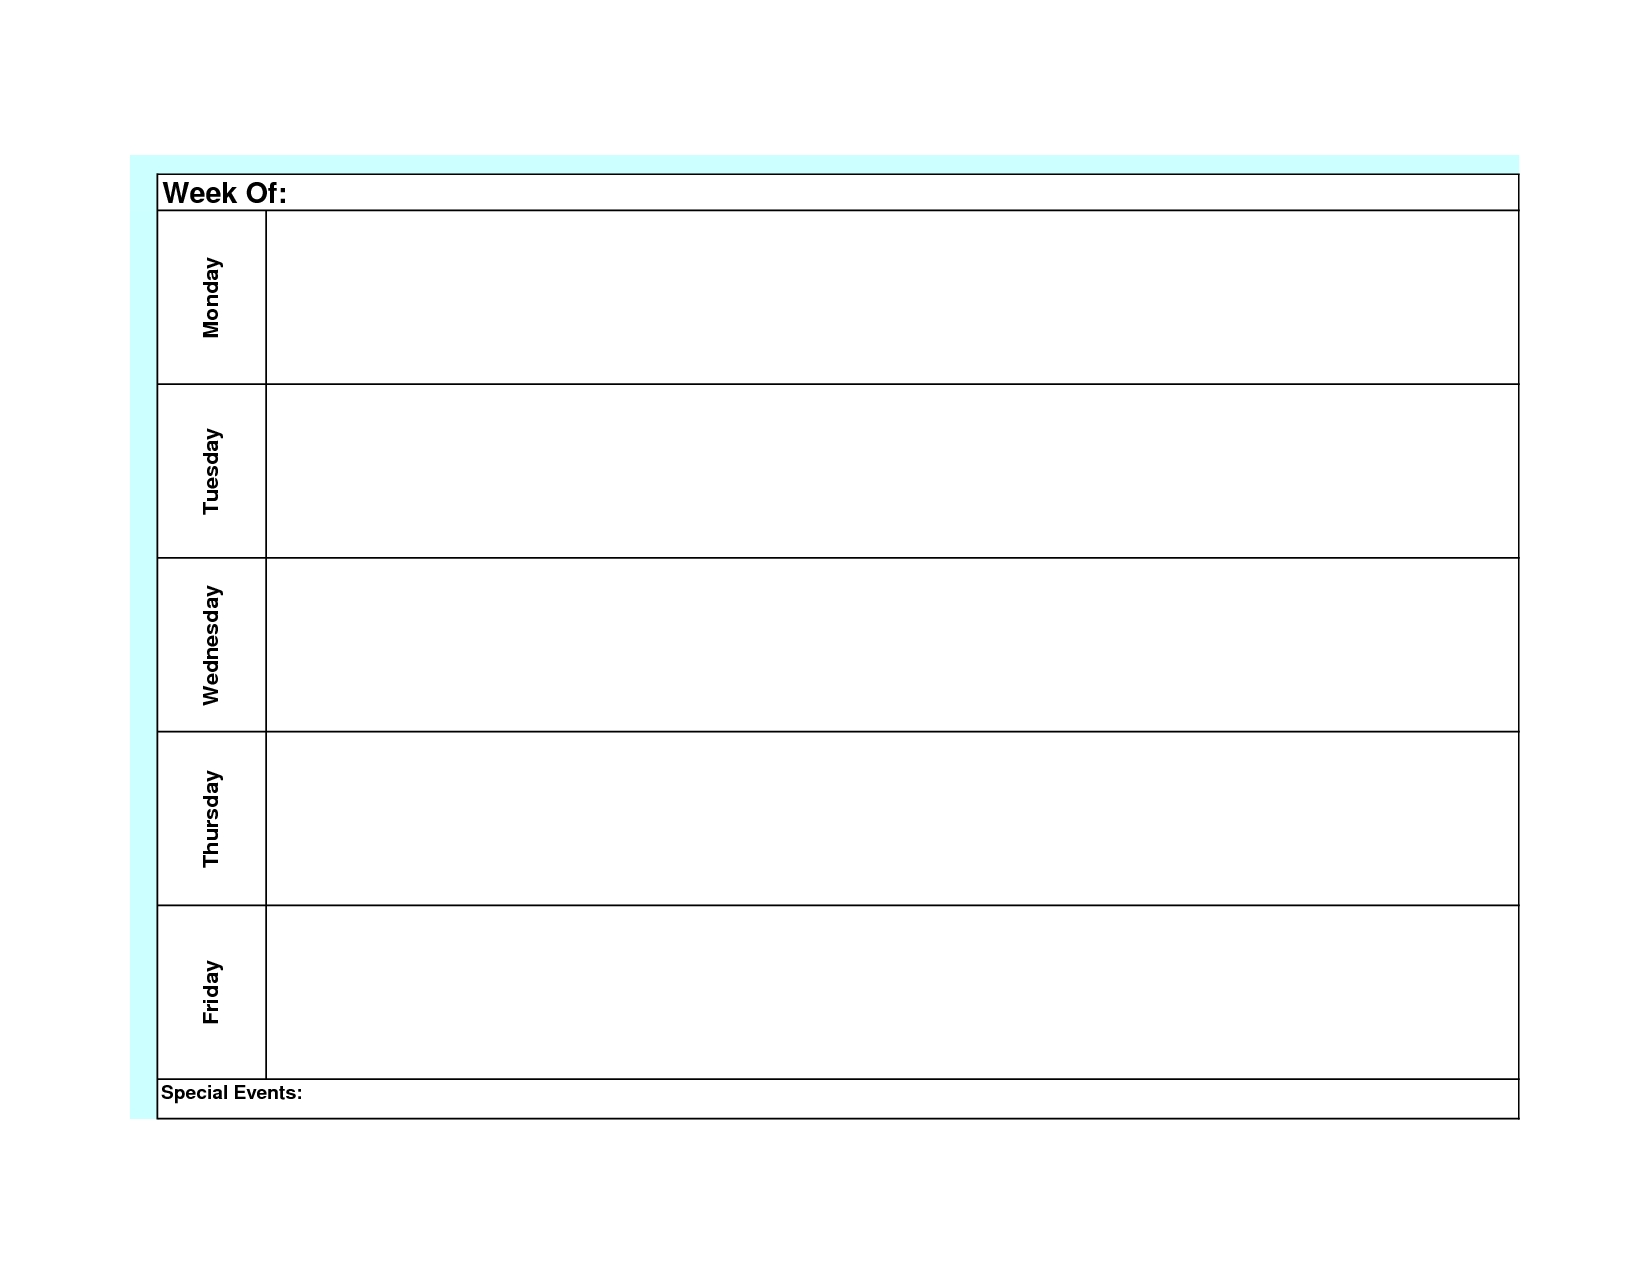 Blank Weekly Calendar Monday Through Friday Template Planner To | Smorad throughout Monday Through Friday Blank Schedule Print Out